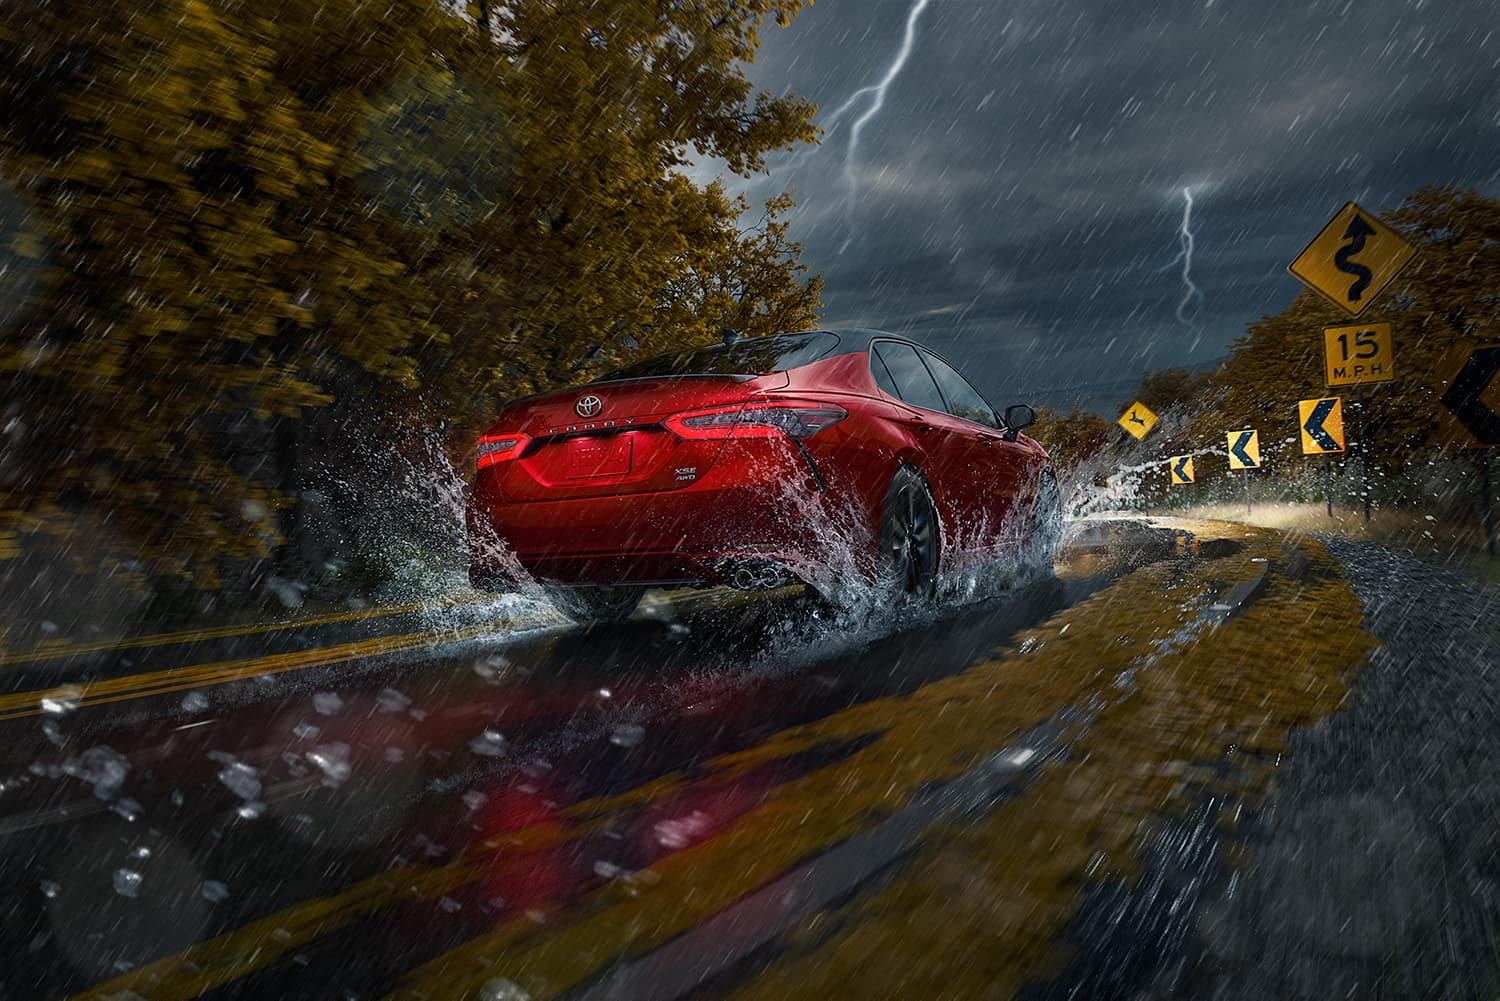 Accessories that help keep your Toyota protected at Halterman's Toyota in East Stroudsburg   2021 Toyota Camry driving through wet roads in the rain